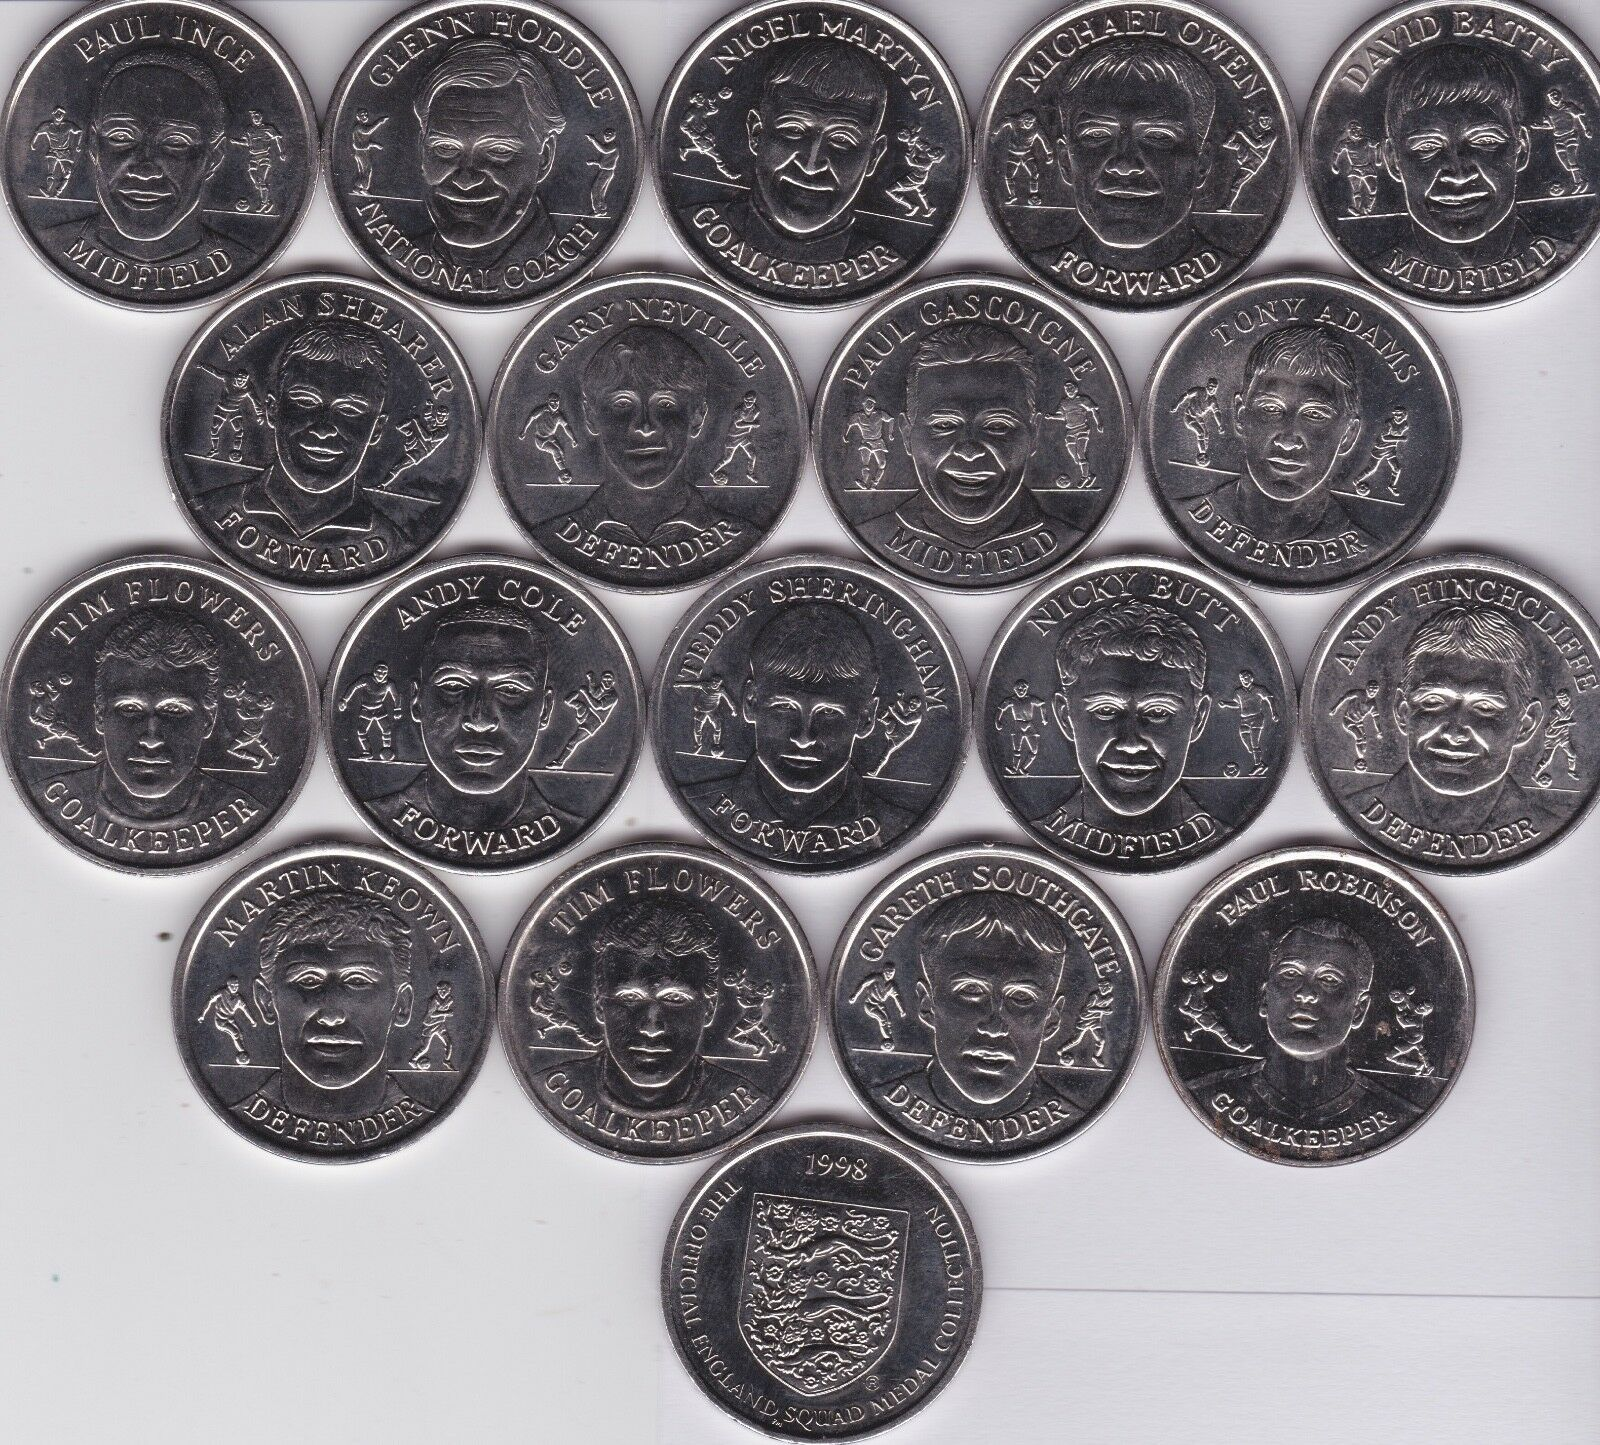 1998 World Cup Collectors Players England Squad Coins Tokens Medallions CHOOSE